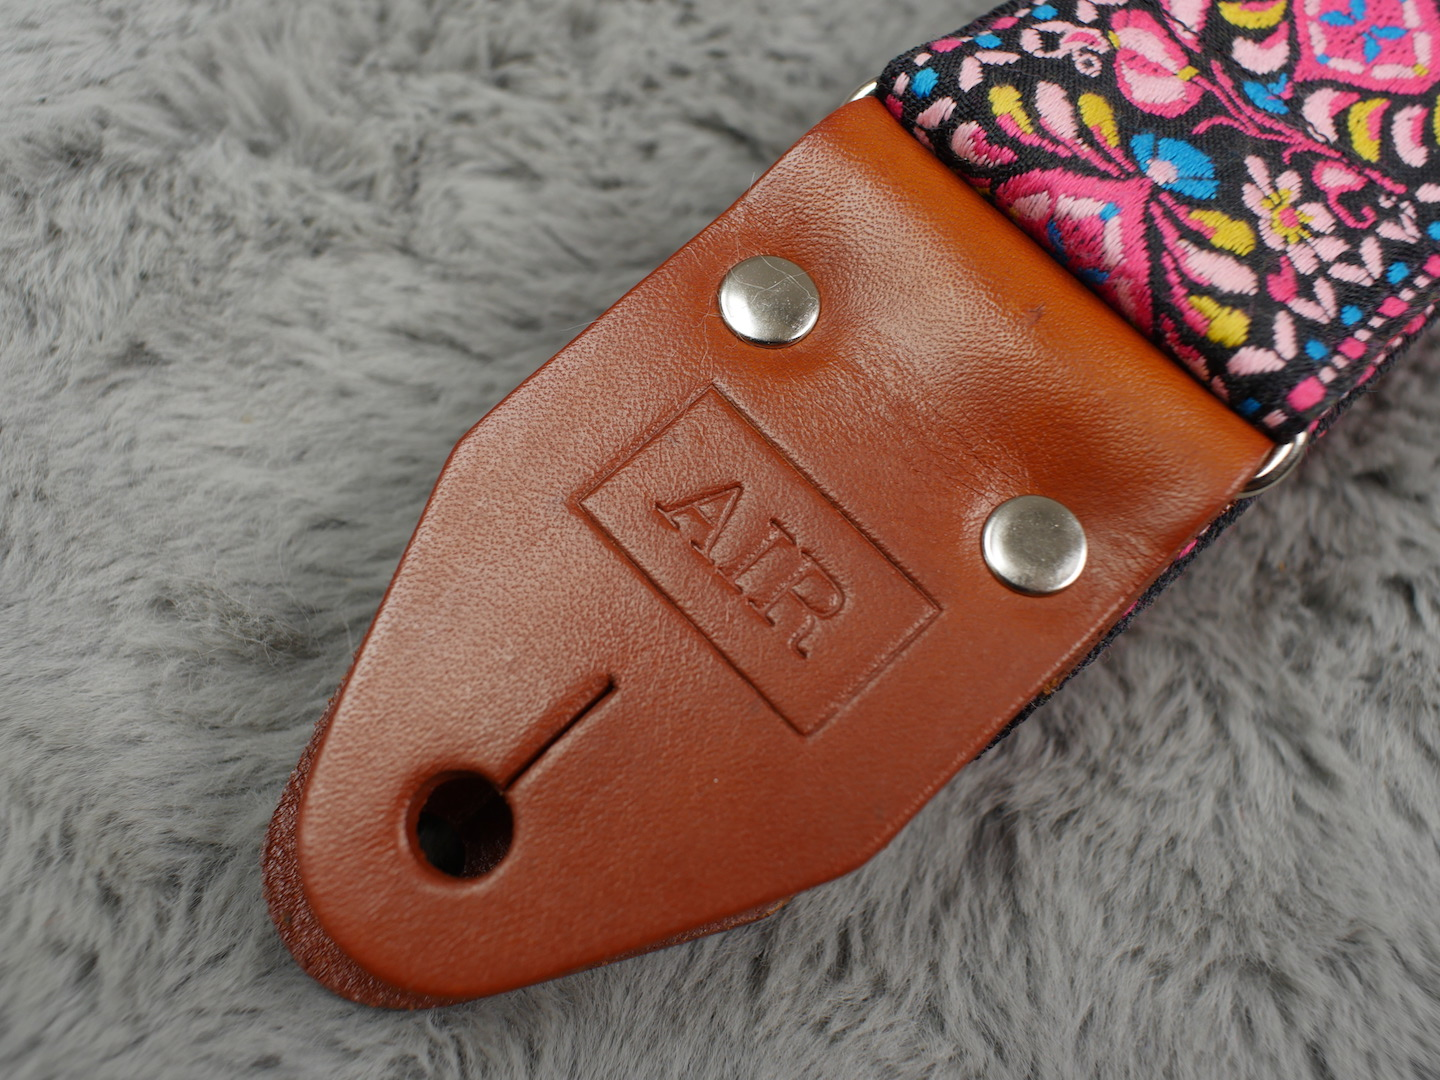 Air Straps Limited Edition 'Lotus' Guitar Strap